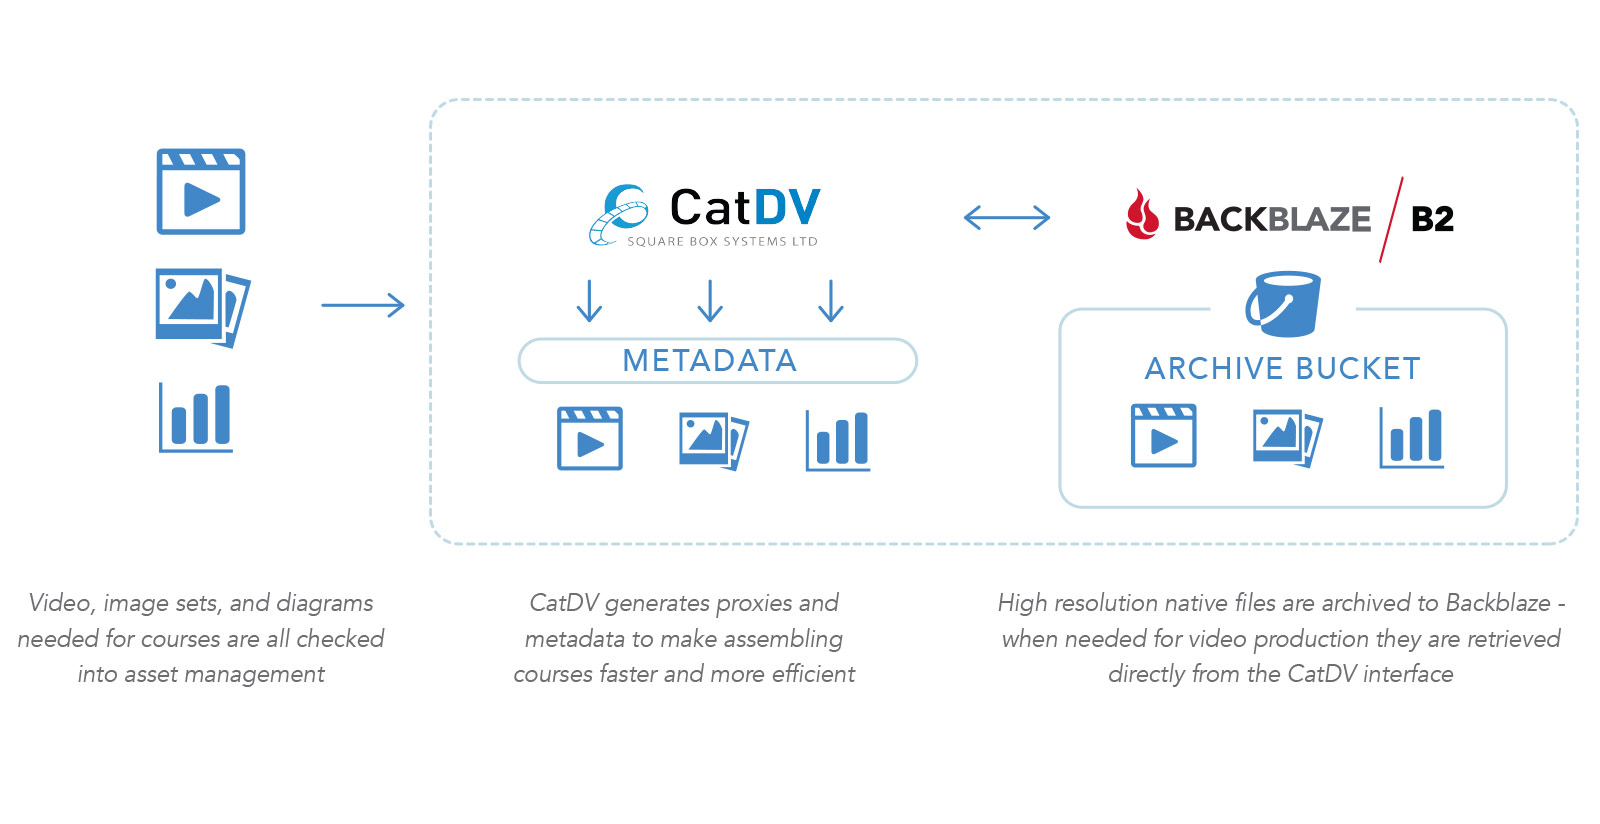 CatDV to B2 Diagram